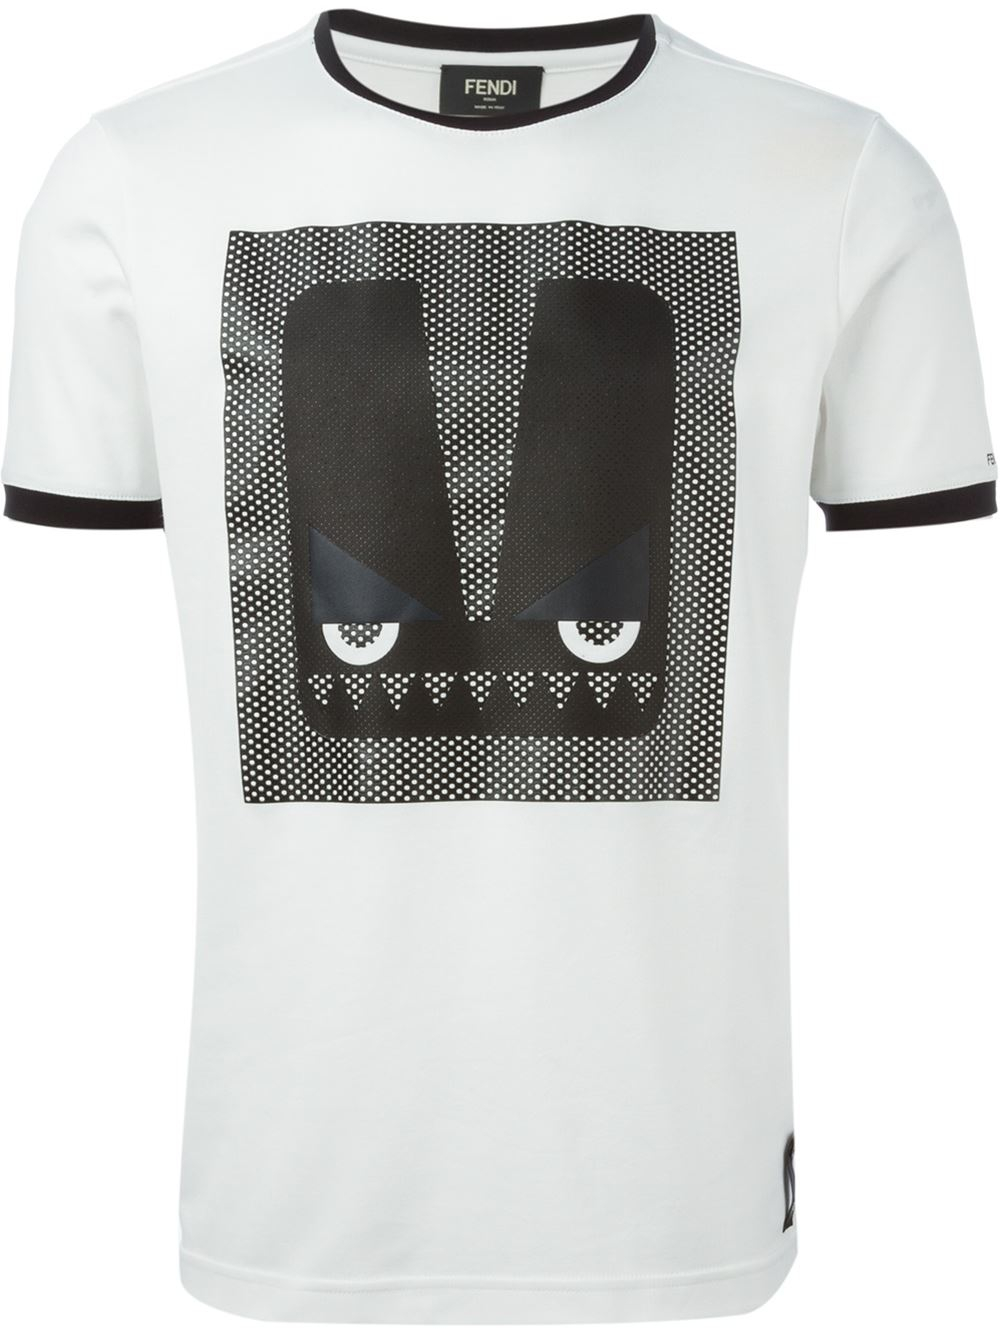 0db86c33bf6 Fendi Mens T Shirt Sale